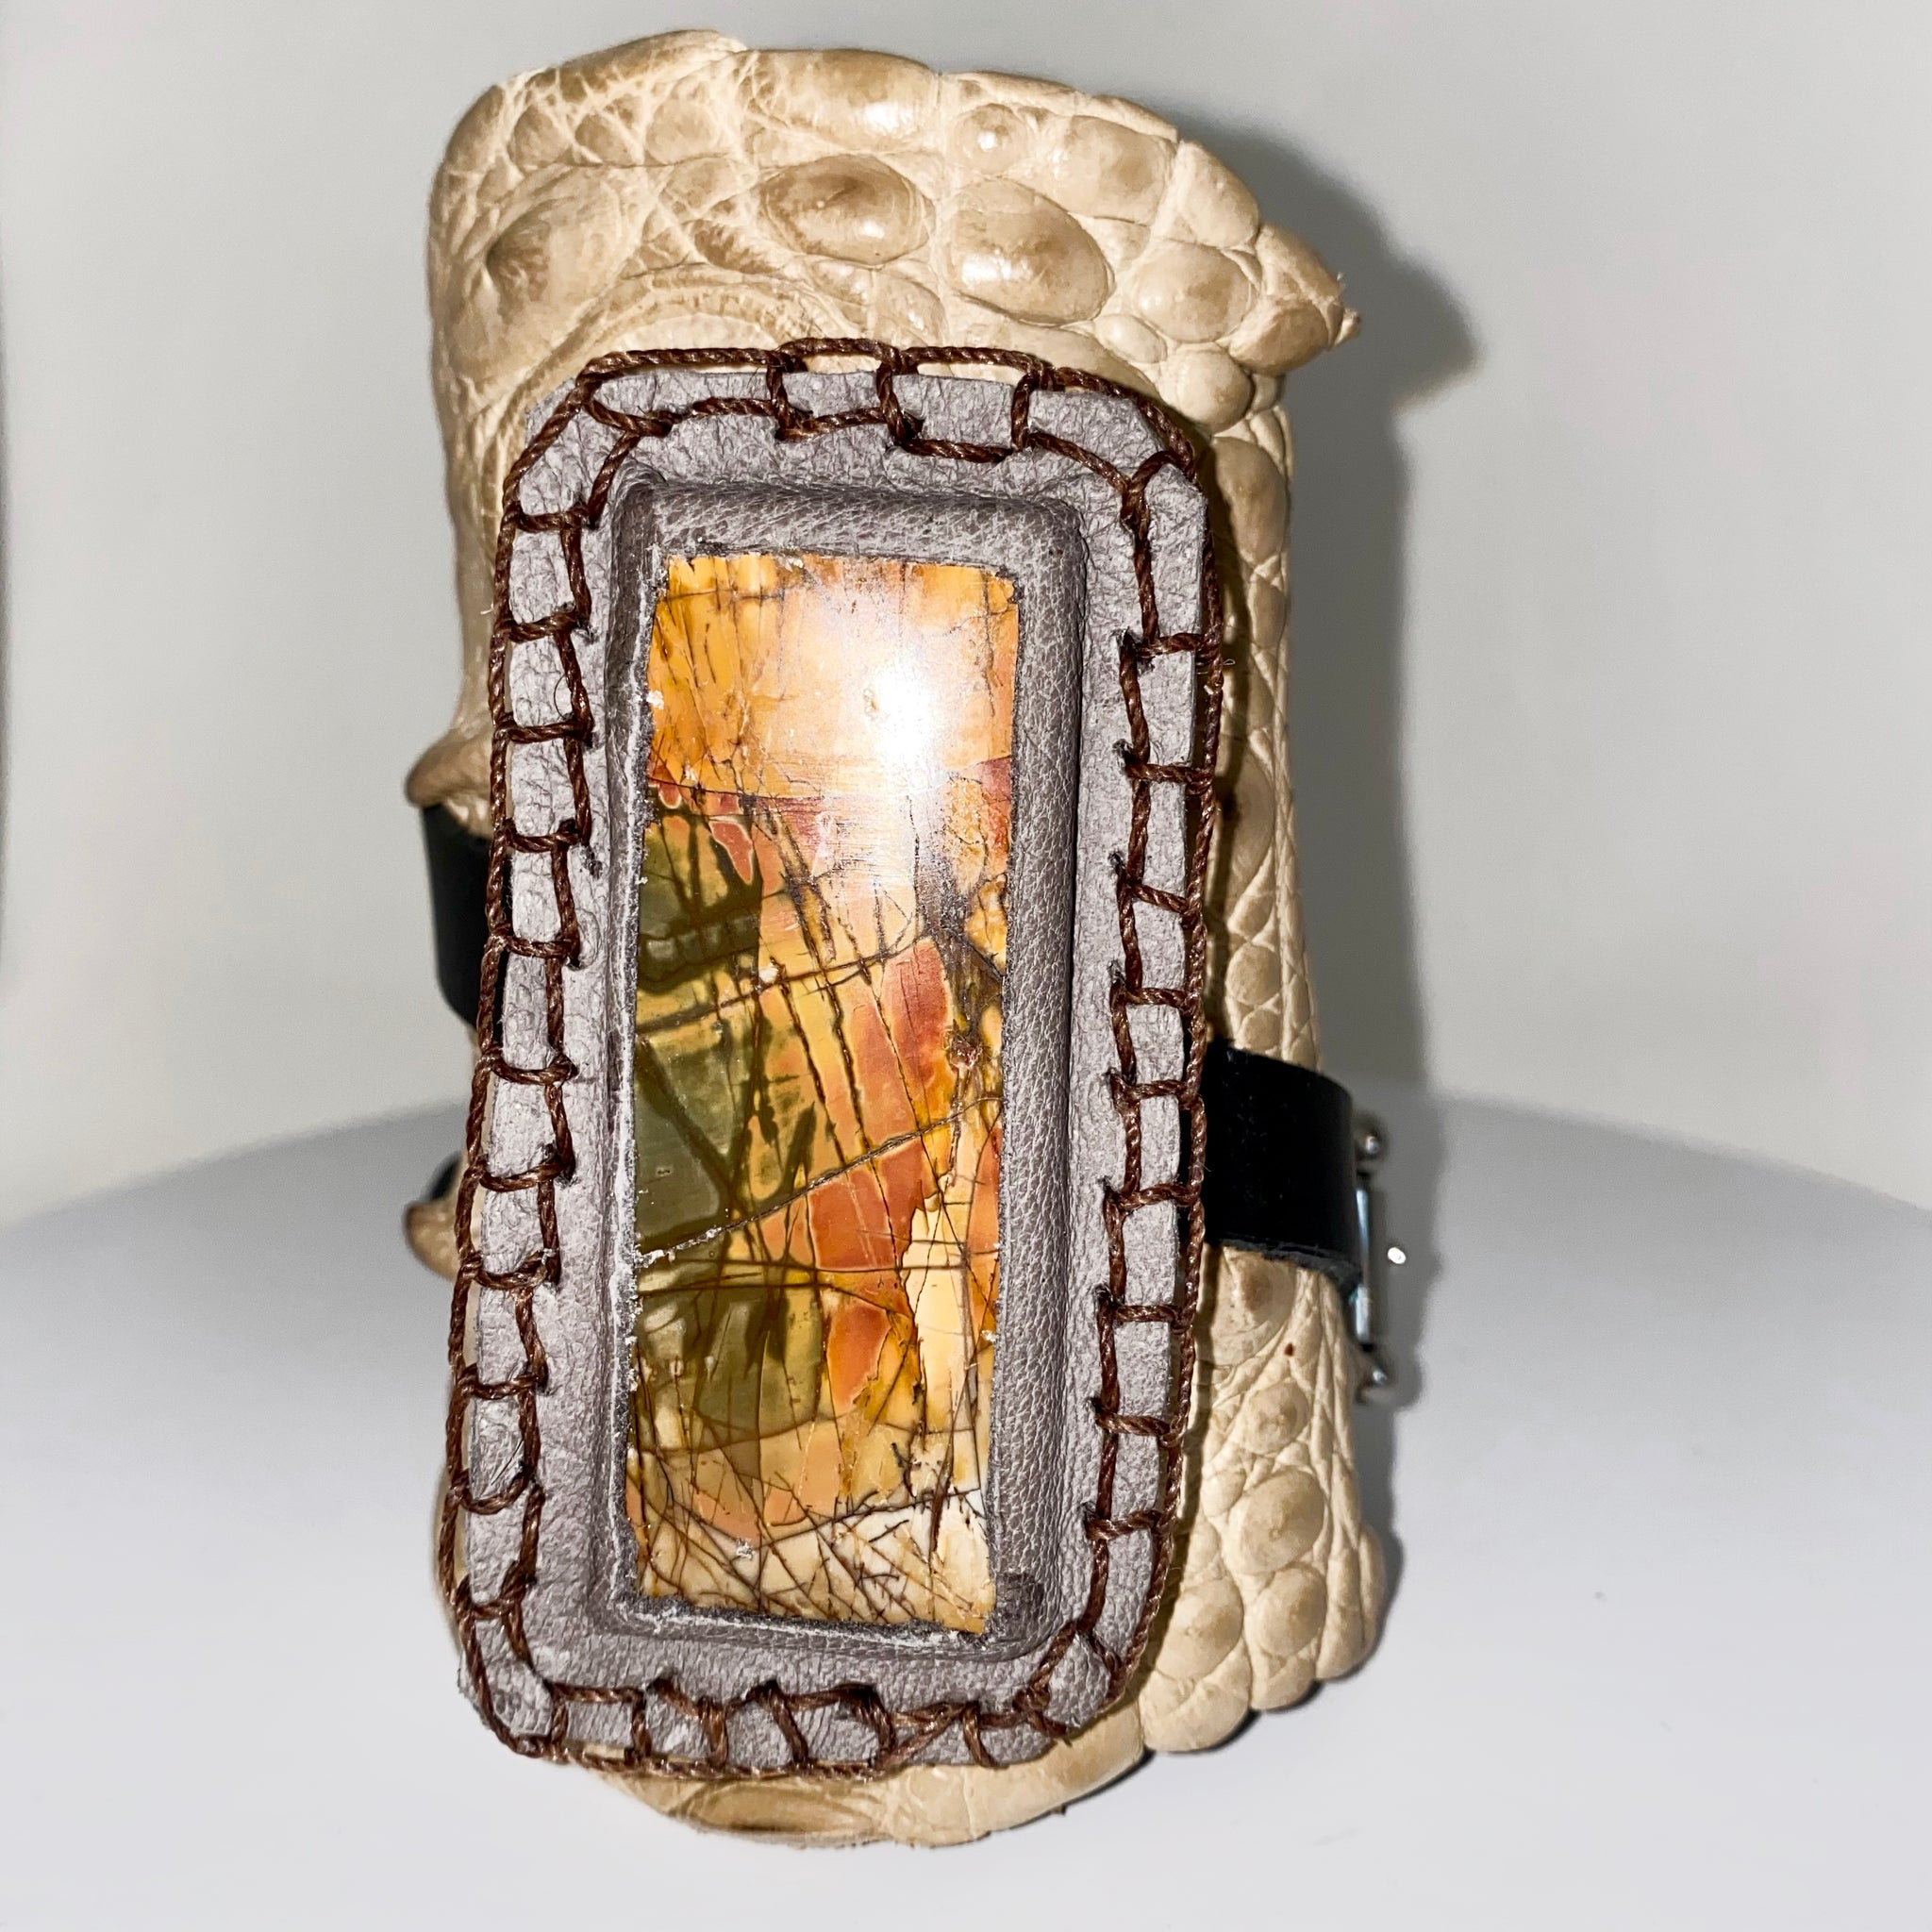 crocodile cuff with large stone set in leather by NYET Jewelry.